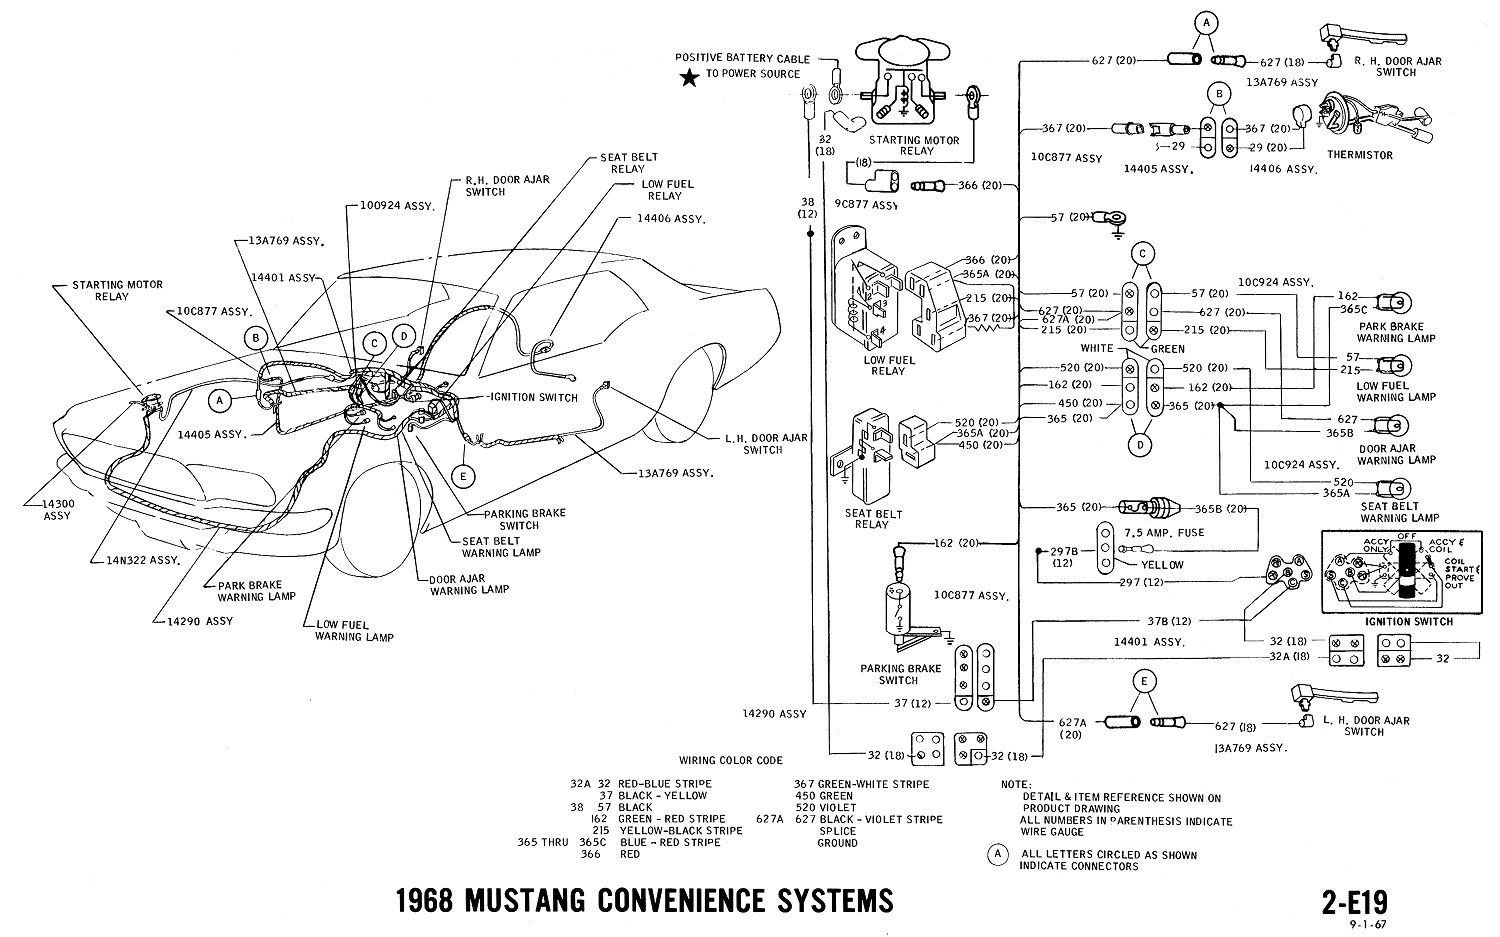 1968 mustang wiring diagram for solenoid 1968 mustang wiring diagrams and vacuum schematics ... club car 48v wiring diagram for solenoid